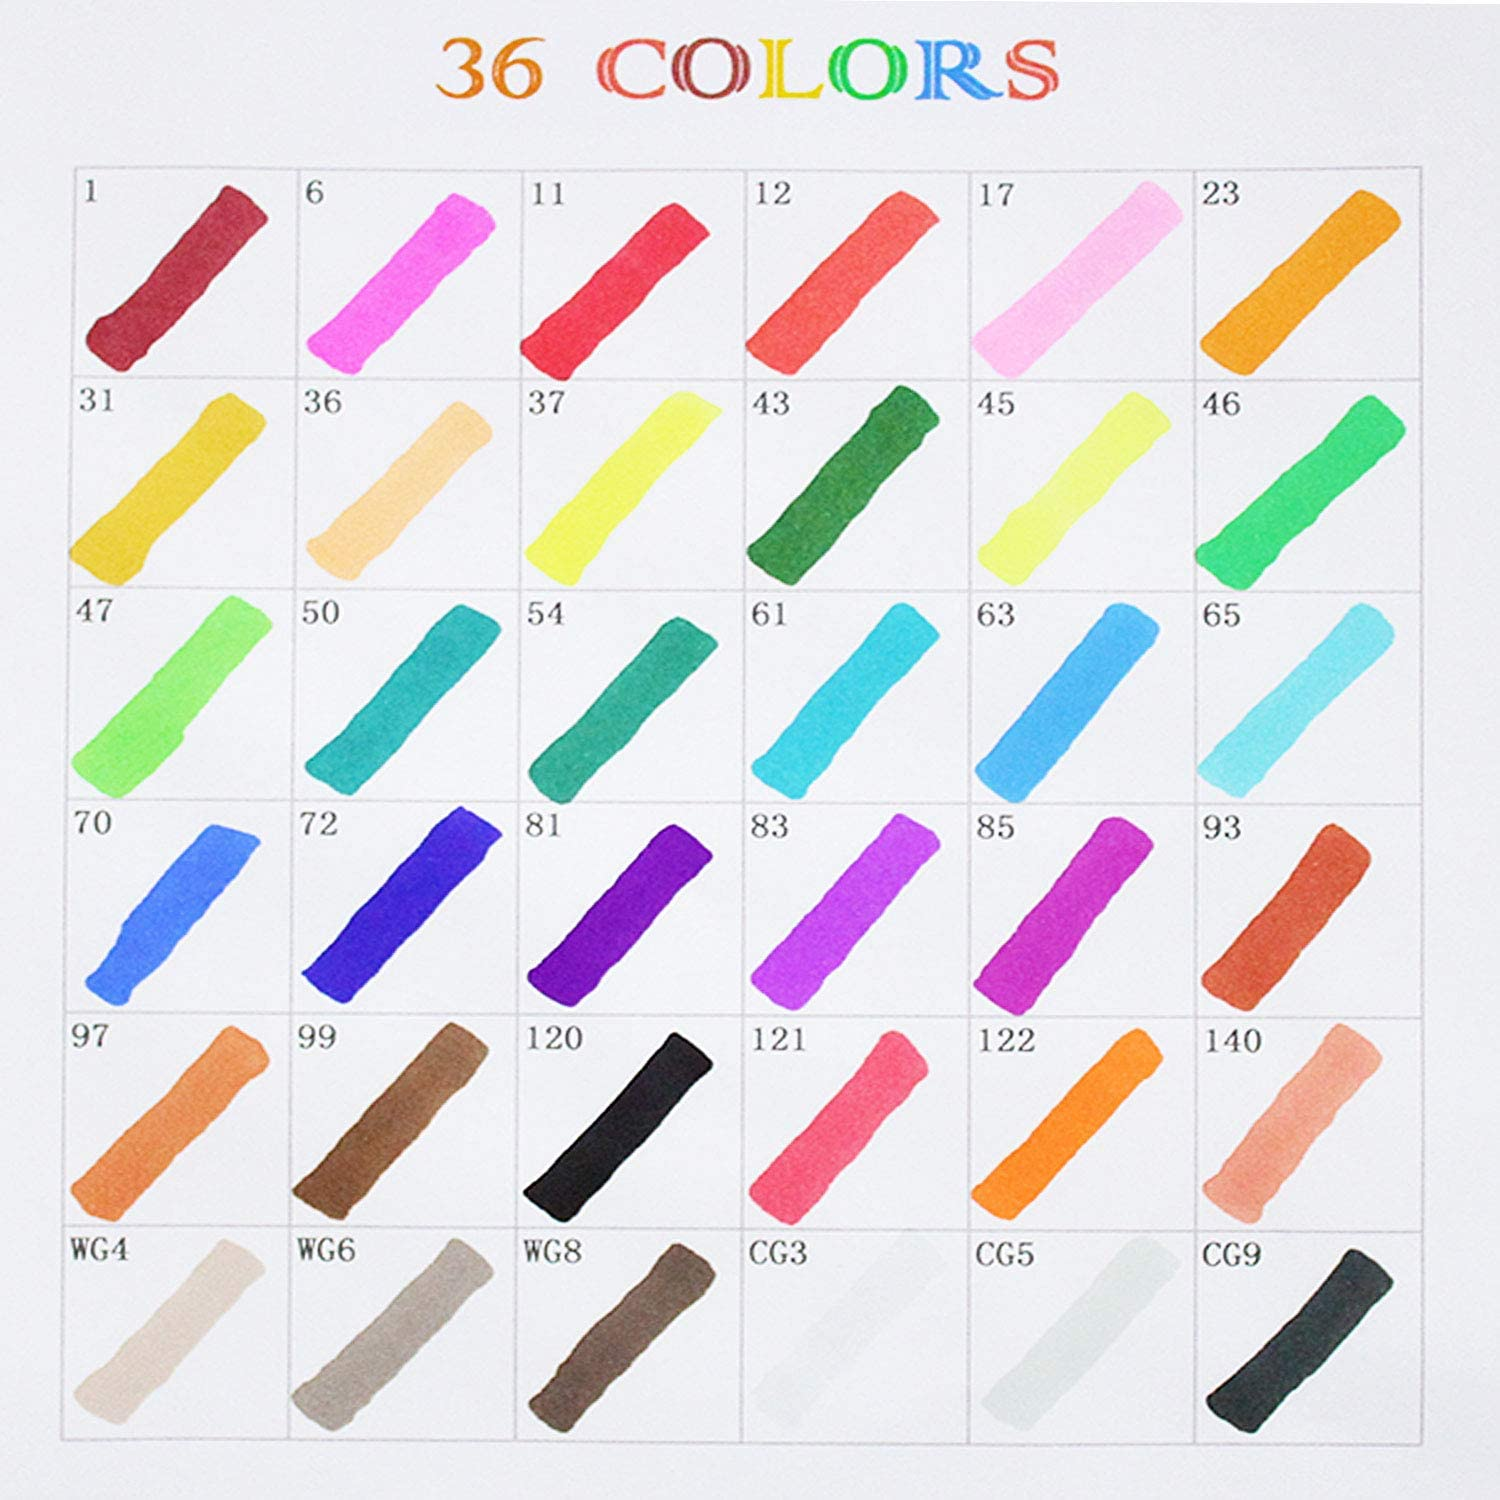 36 Colors Dual-Tip Art Marker for Kids Adults Alcohol-Based Permanent Drawing Markers for Adult Coloring Sketching Painting DIY 36 set